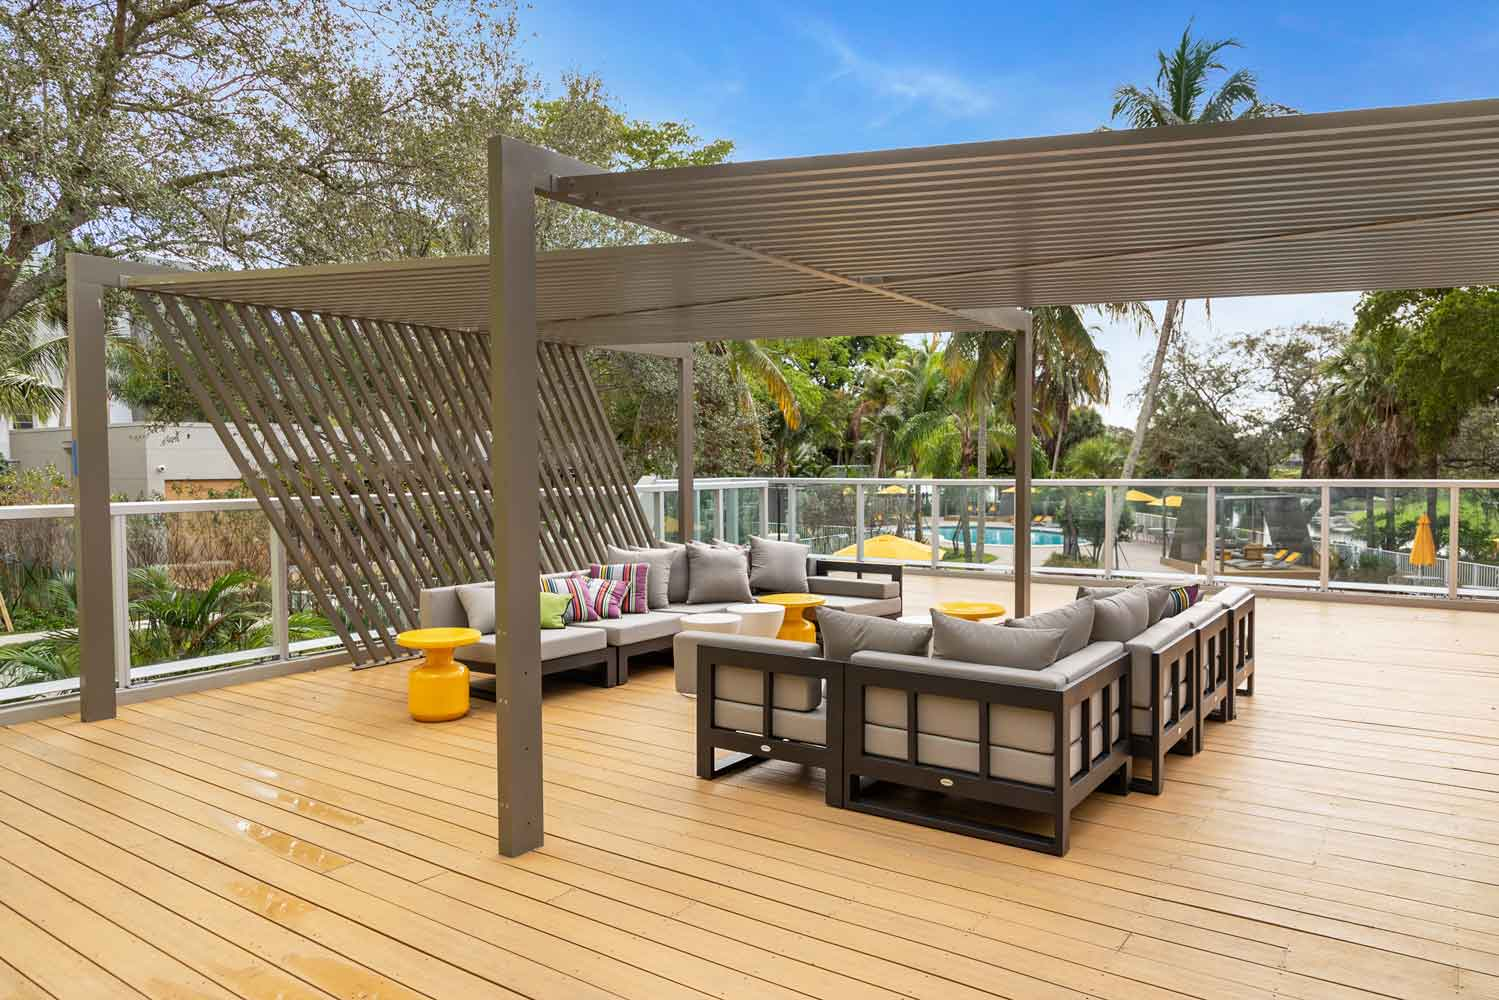 Outdoor Lounge with Seating at Nottingham Pine Apartments in Plantation, FL